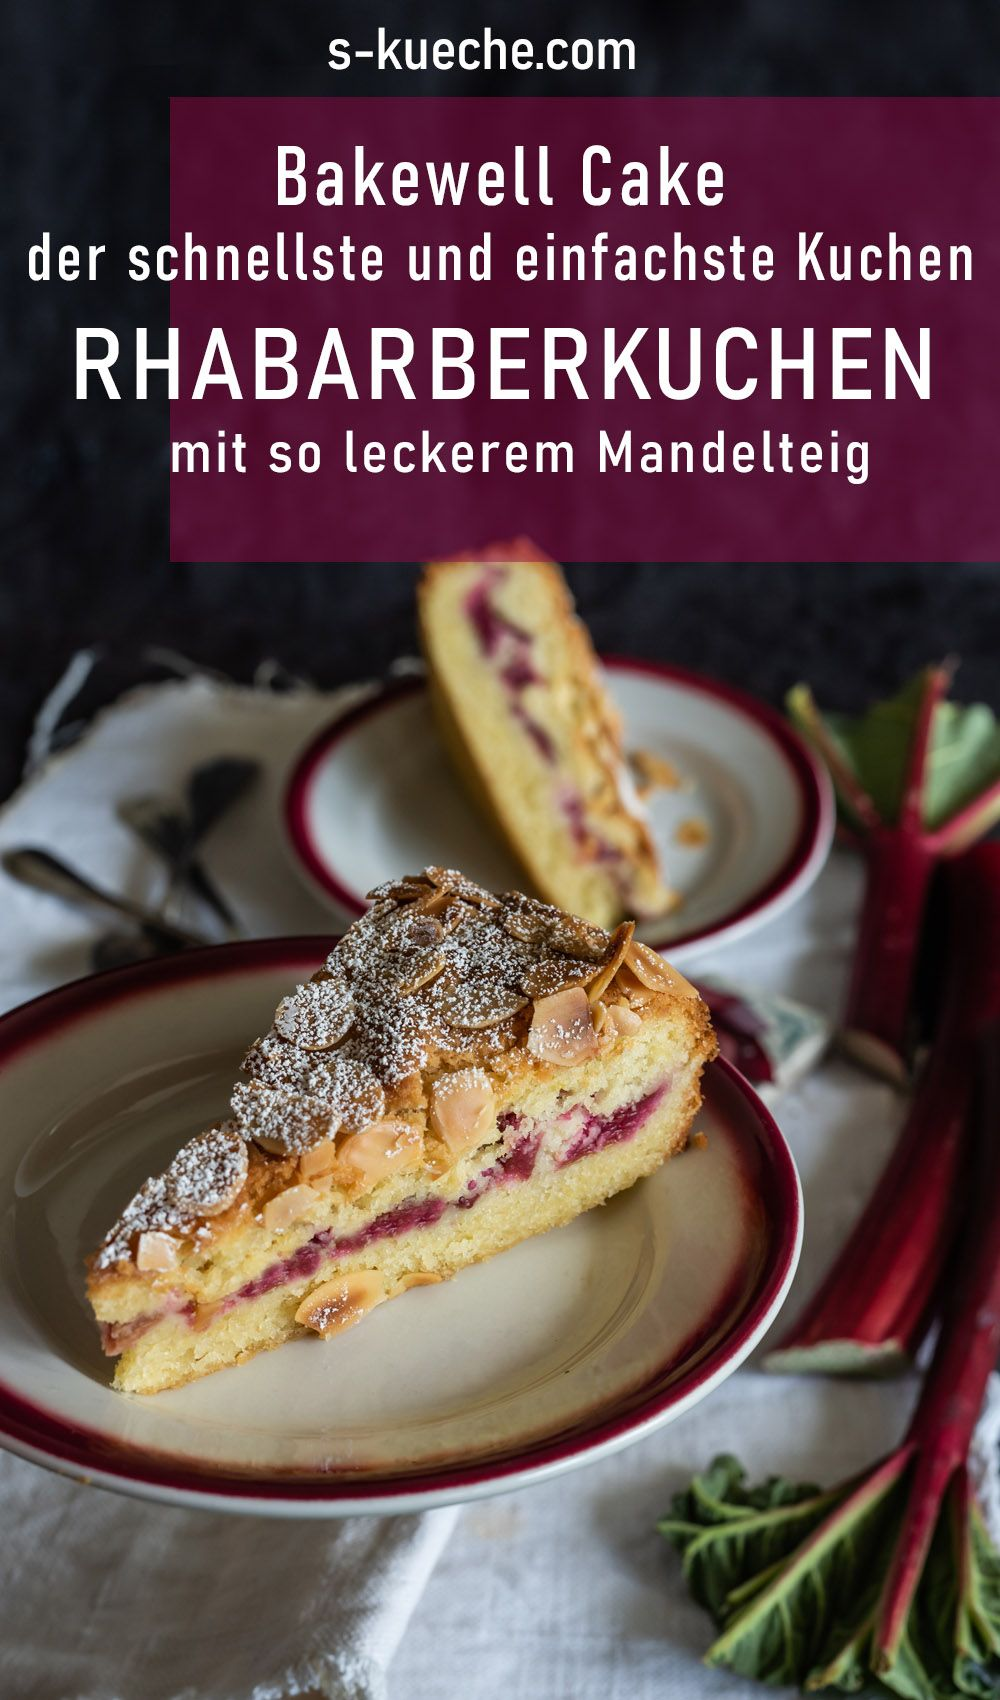 Photo of Ruck-Zuck rhubarb cake with such a delicious almond dough – Bakewell Cake